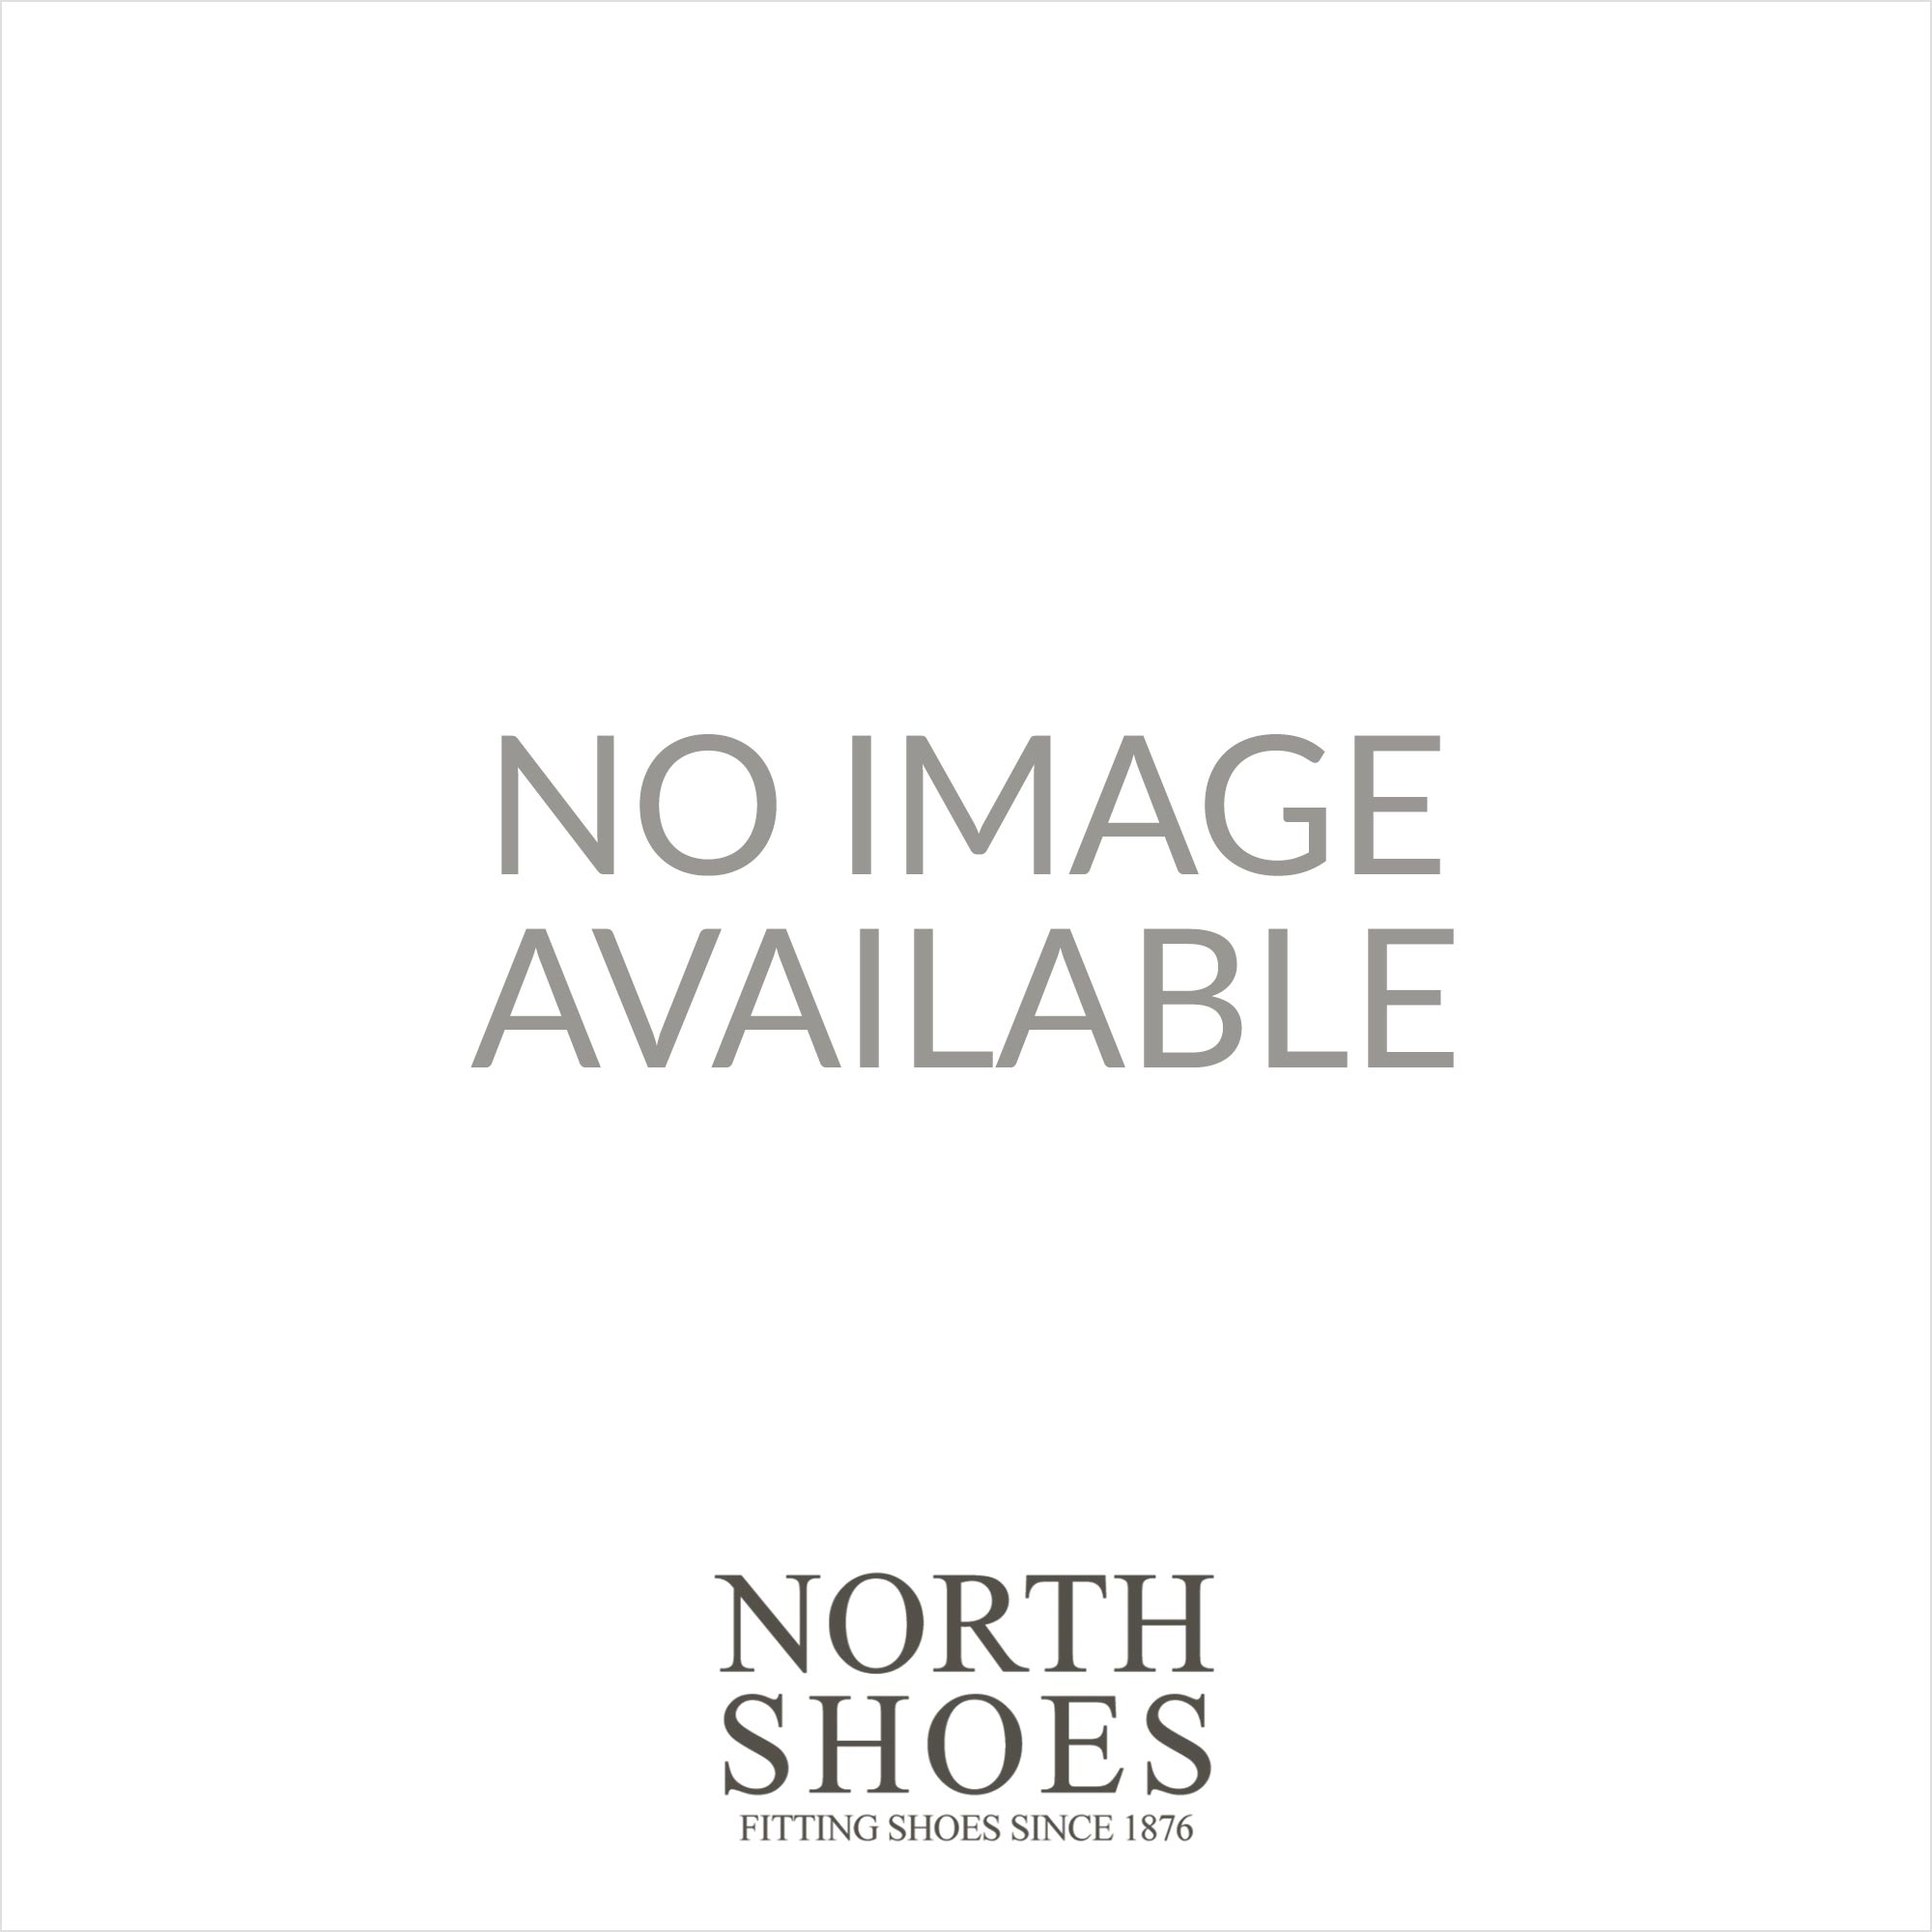 cae1eacb02a7d Clarks Little Weave Navy Patent Leather Girls T-Bar Pre Walker Shoe - Clarks  from North Shoes UK